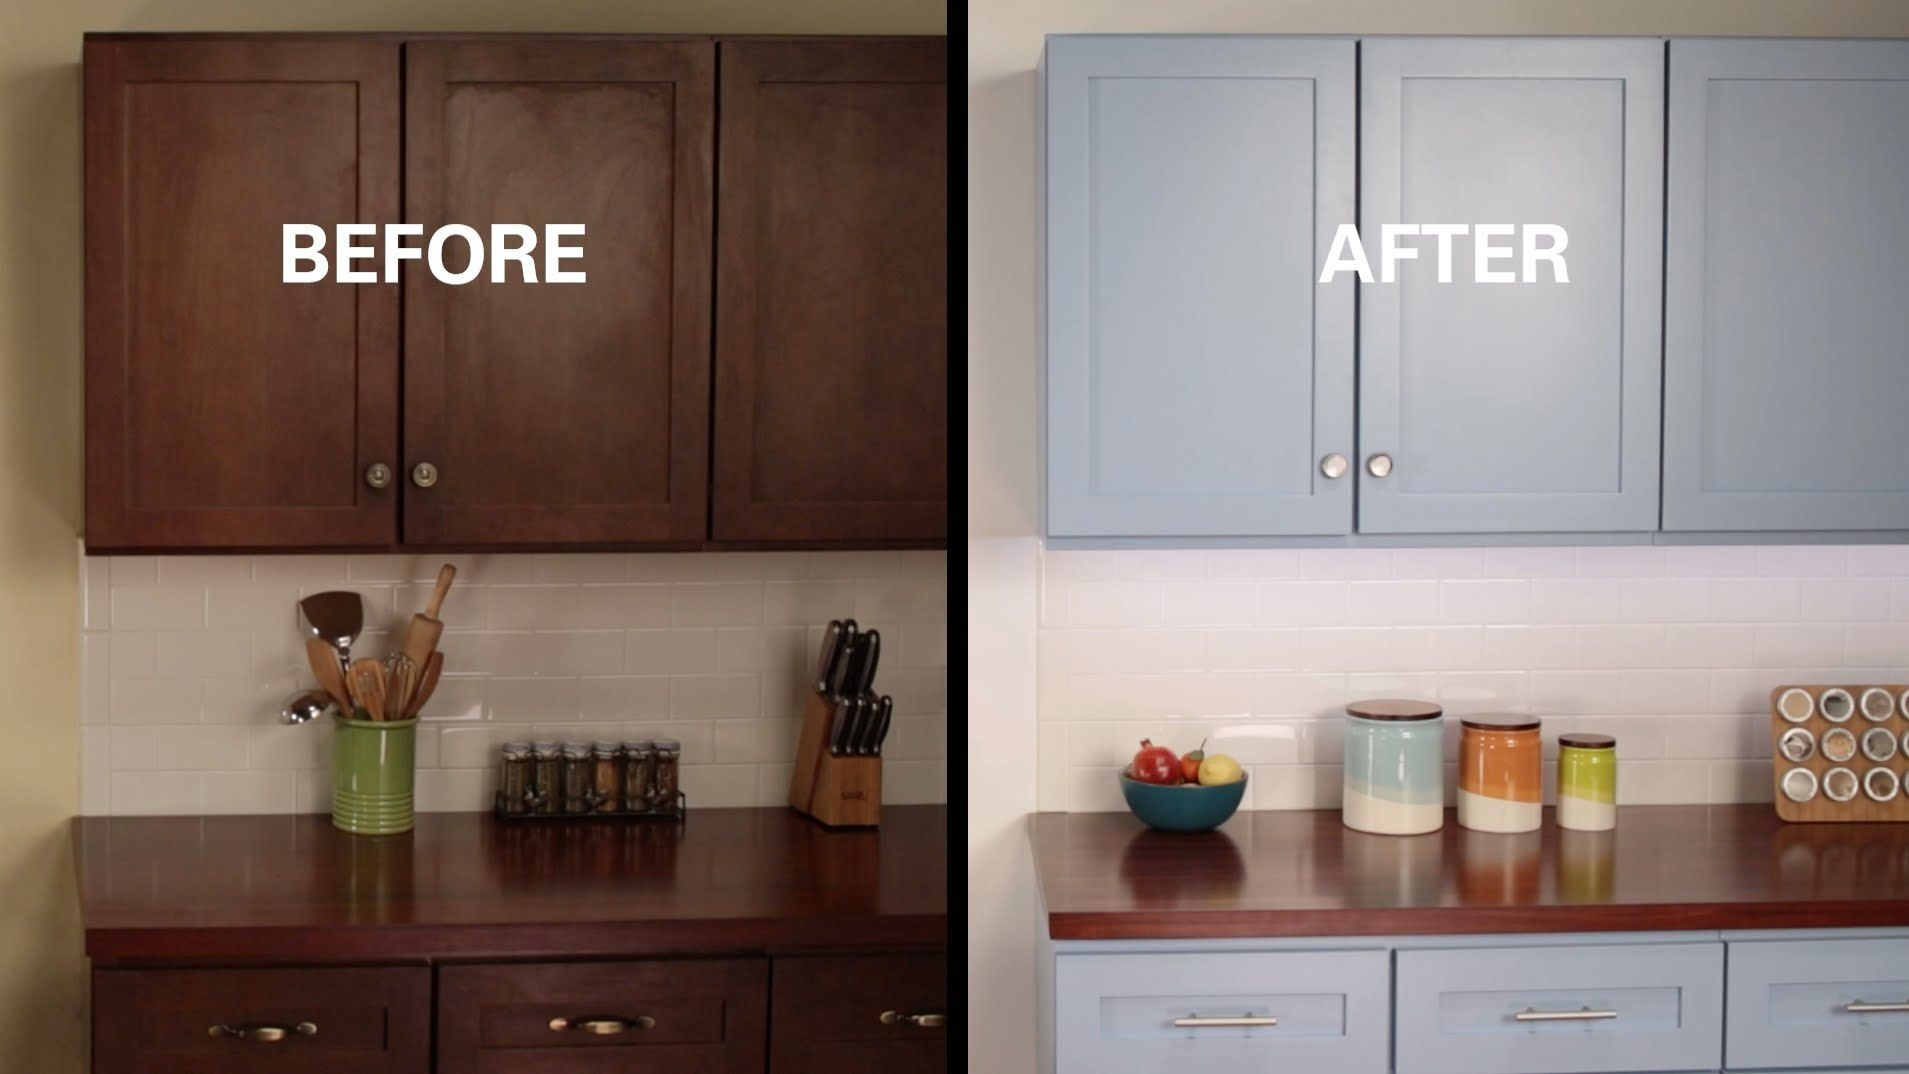 How To Reface Formica Kitchen Cabinets Yourself | Dandk ...